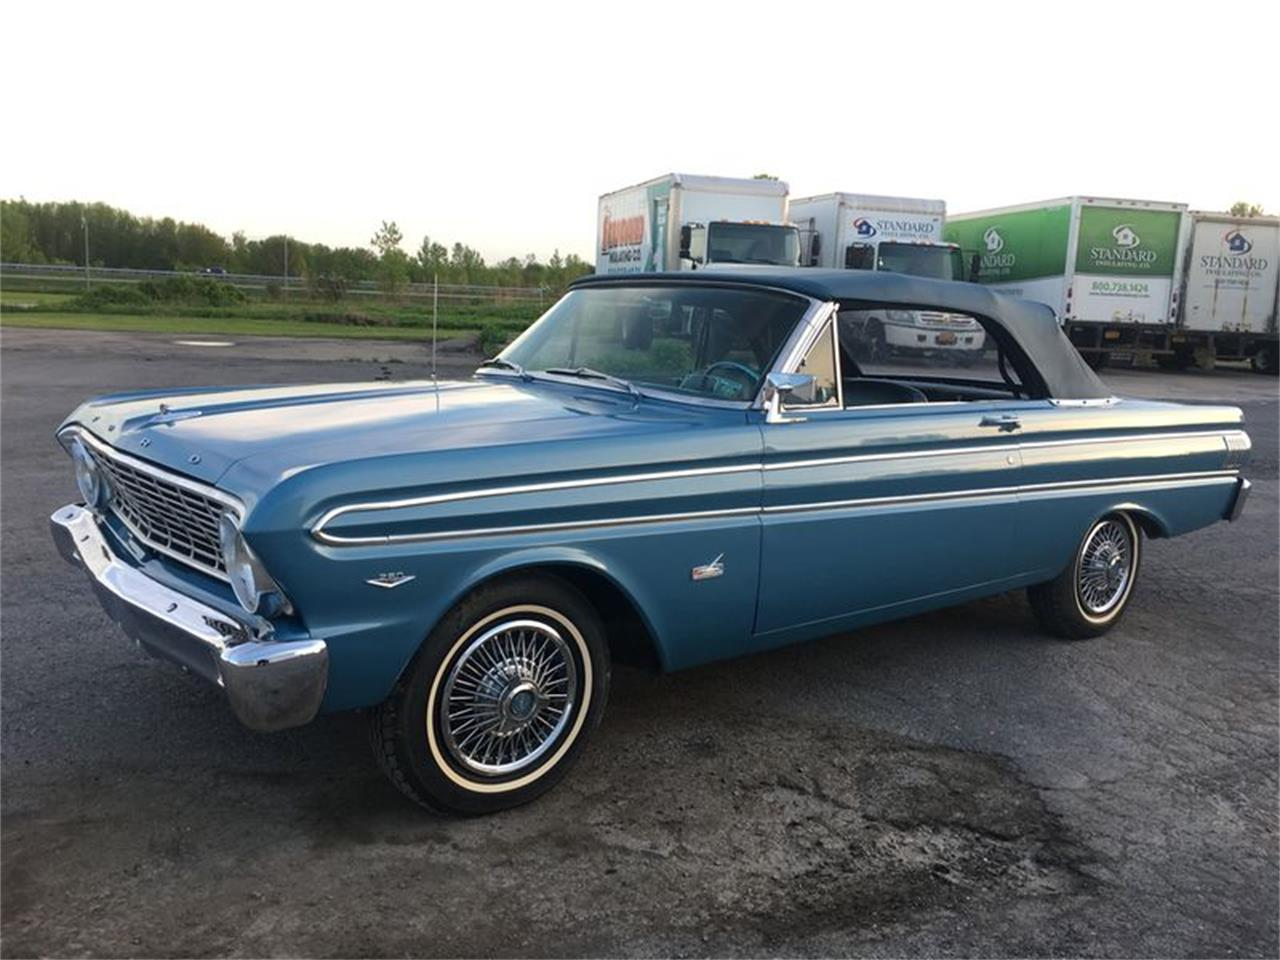 1964 Ford Falcon For Sale Cc 1097140 Futura Convertible Large Picture Of Classic Auction Vehicle Offered By Carlisle Auctions Nik4